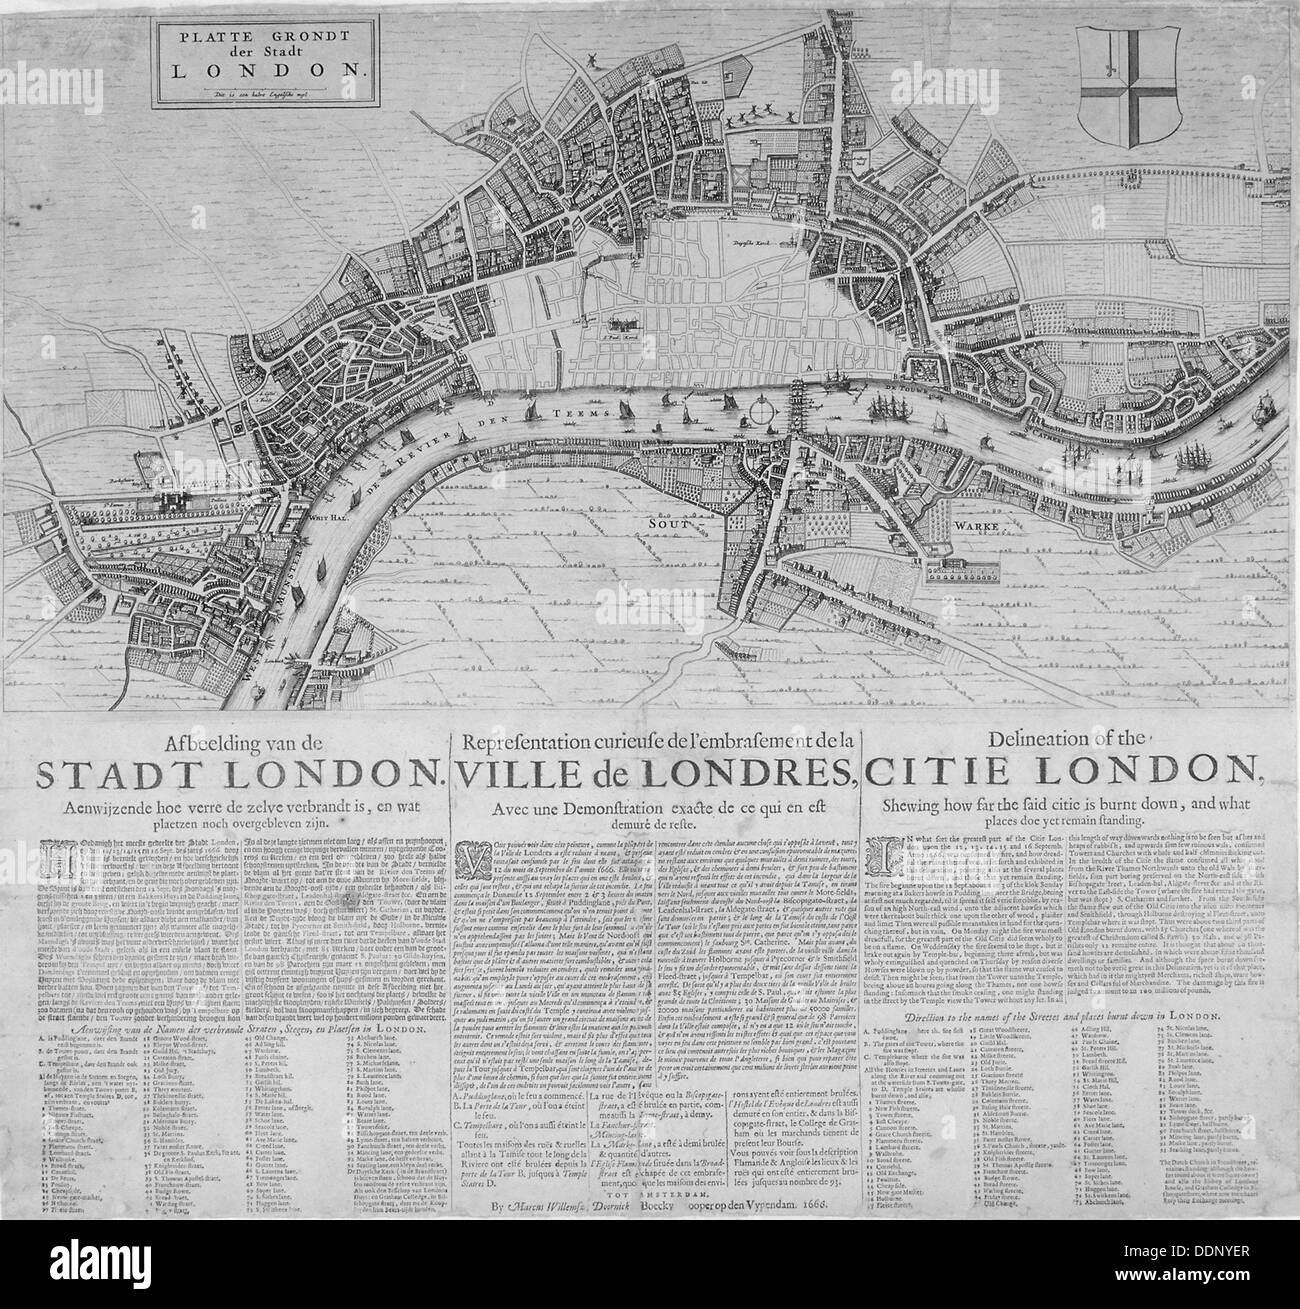 Map of London showing the destruction caused by the Great Fire, 1666. Artist: Anon - Stock Image